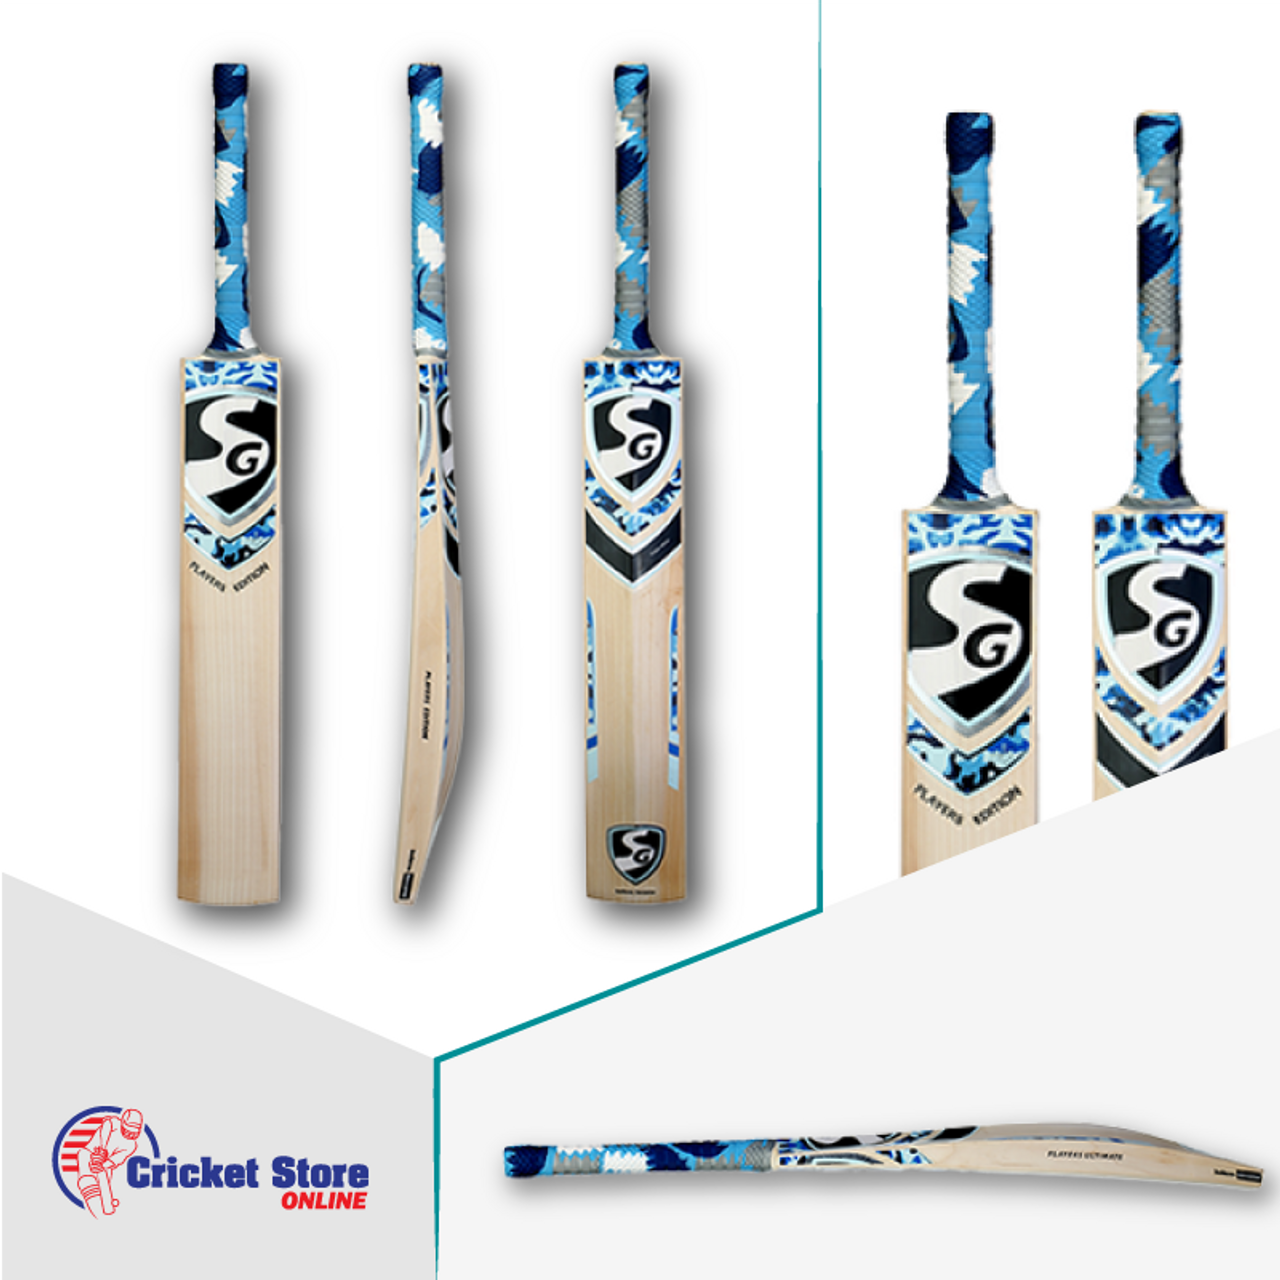 a9393a208 SG Players Edition Cricket Bat 2019 image